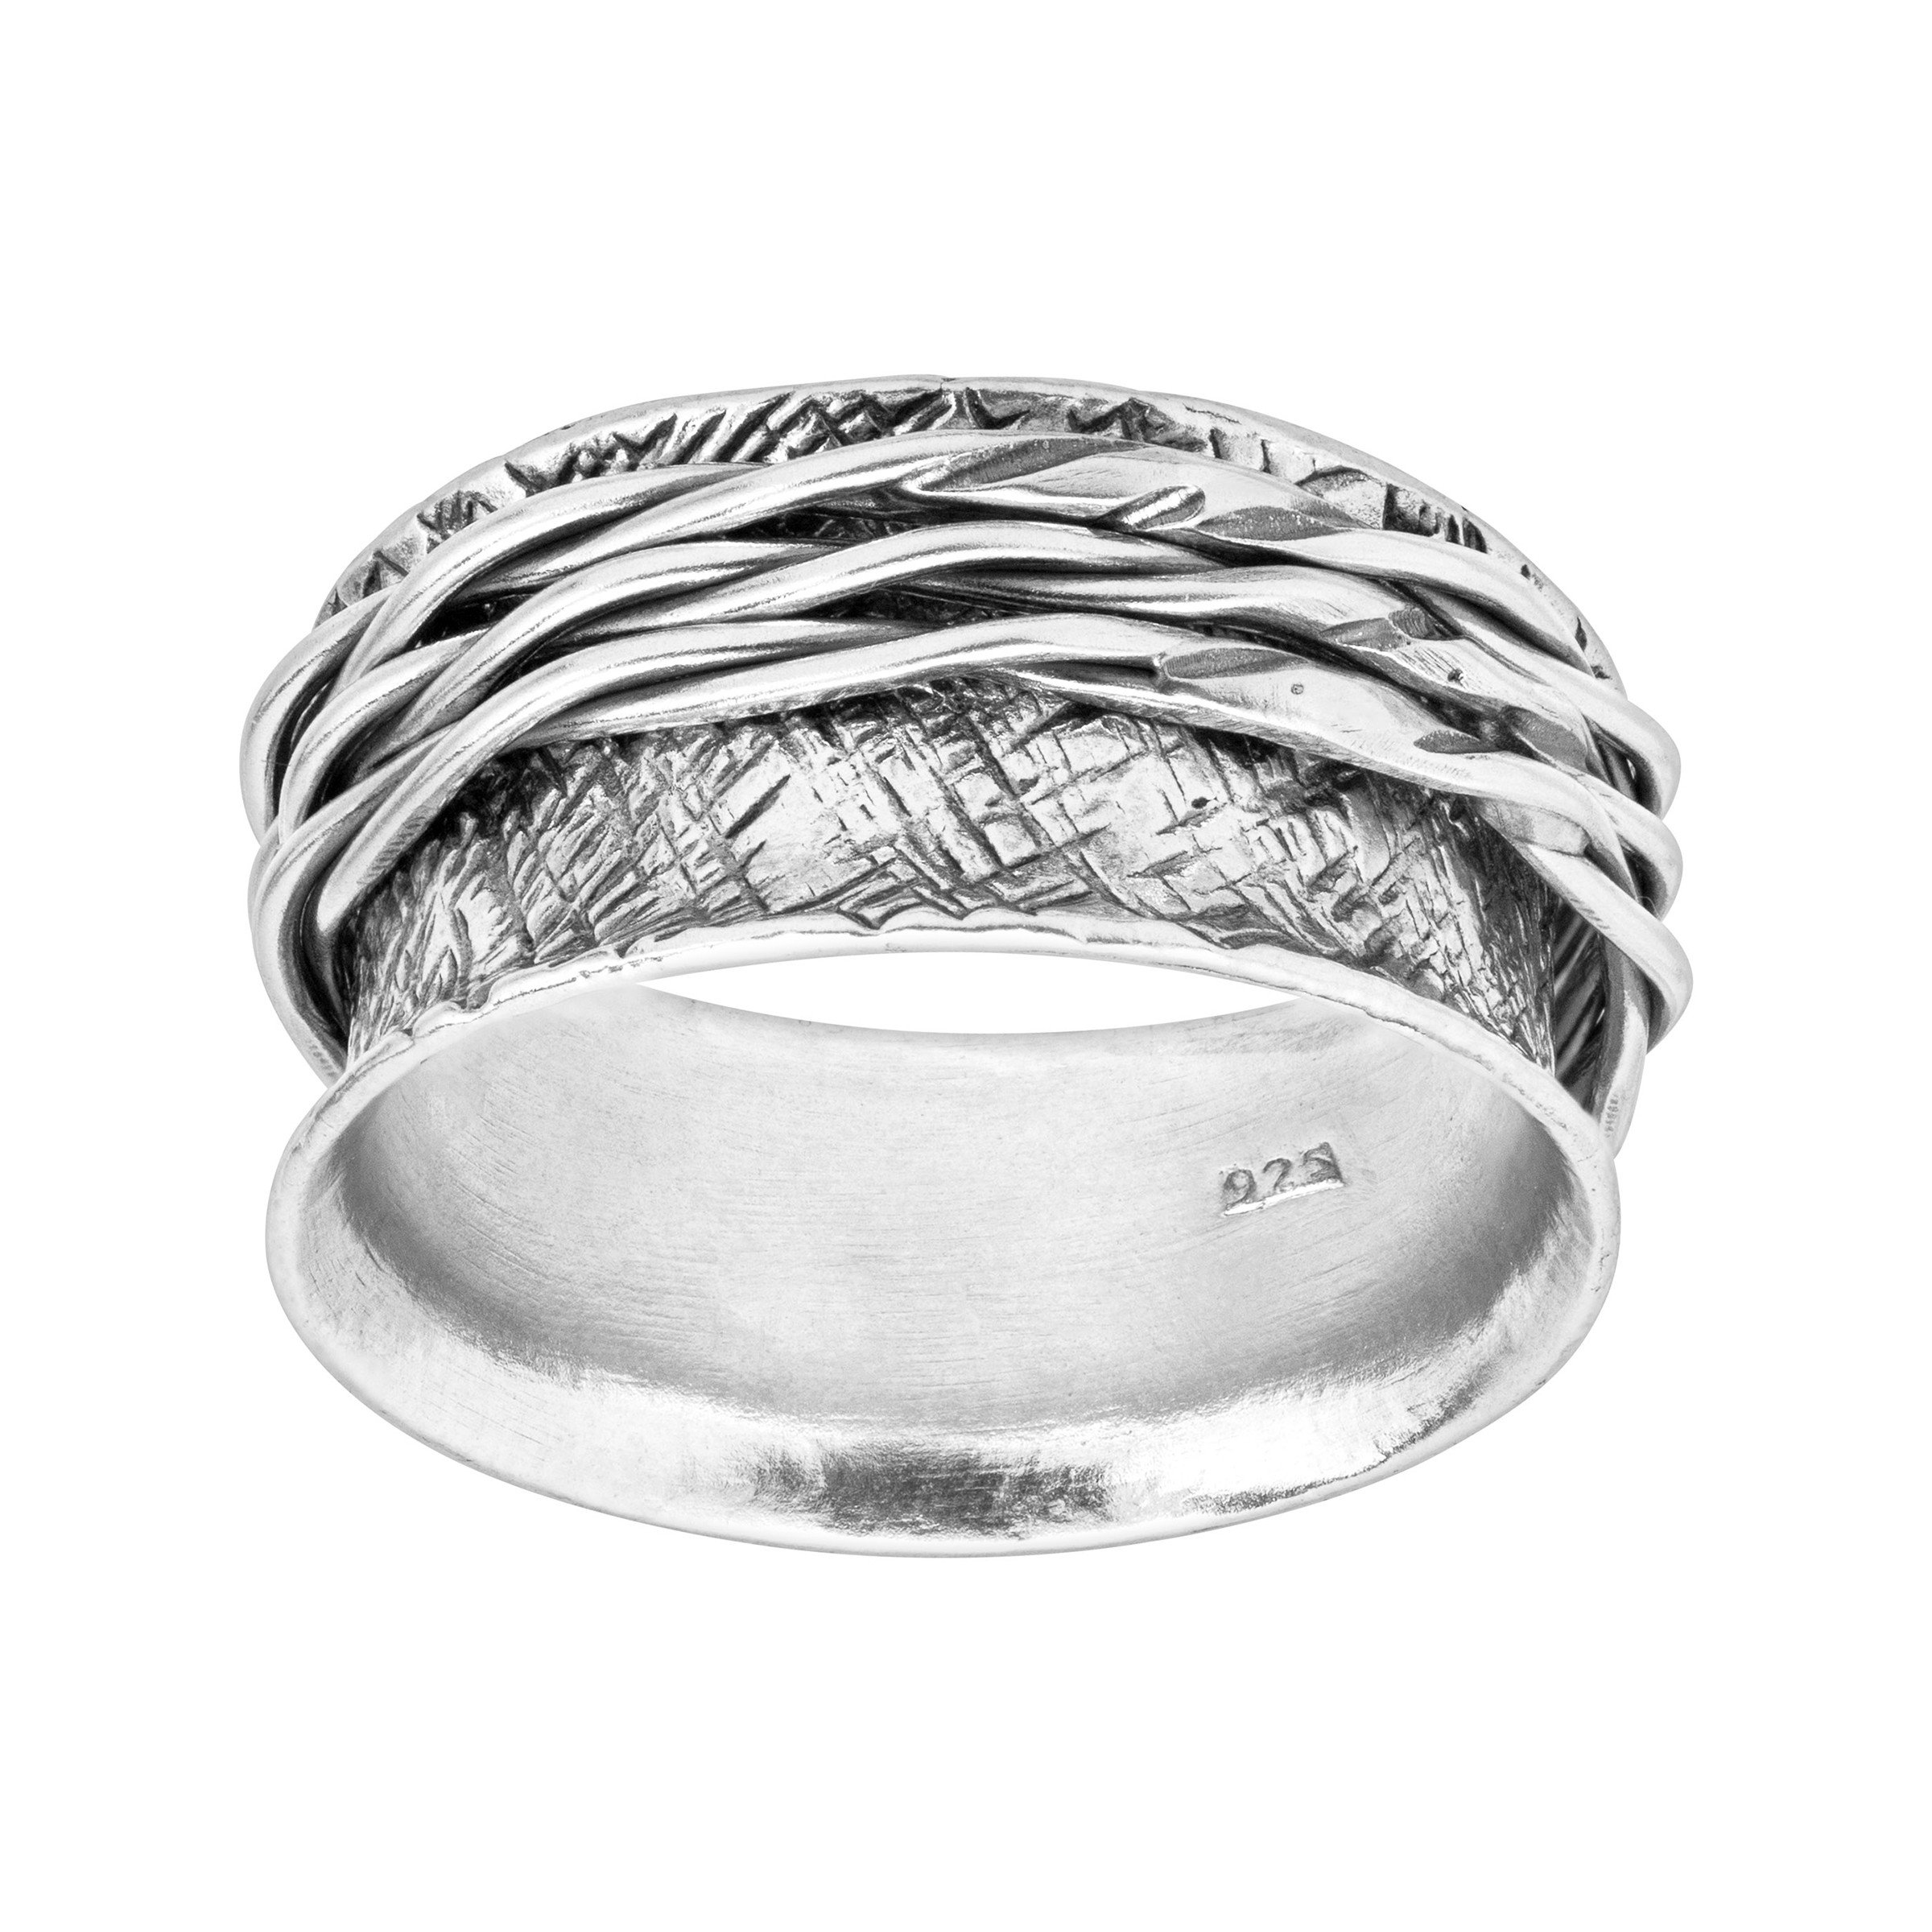 Silpada 'Twist of Fate' Ring in Sterling Silver